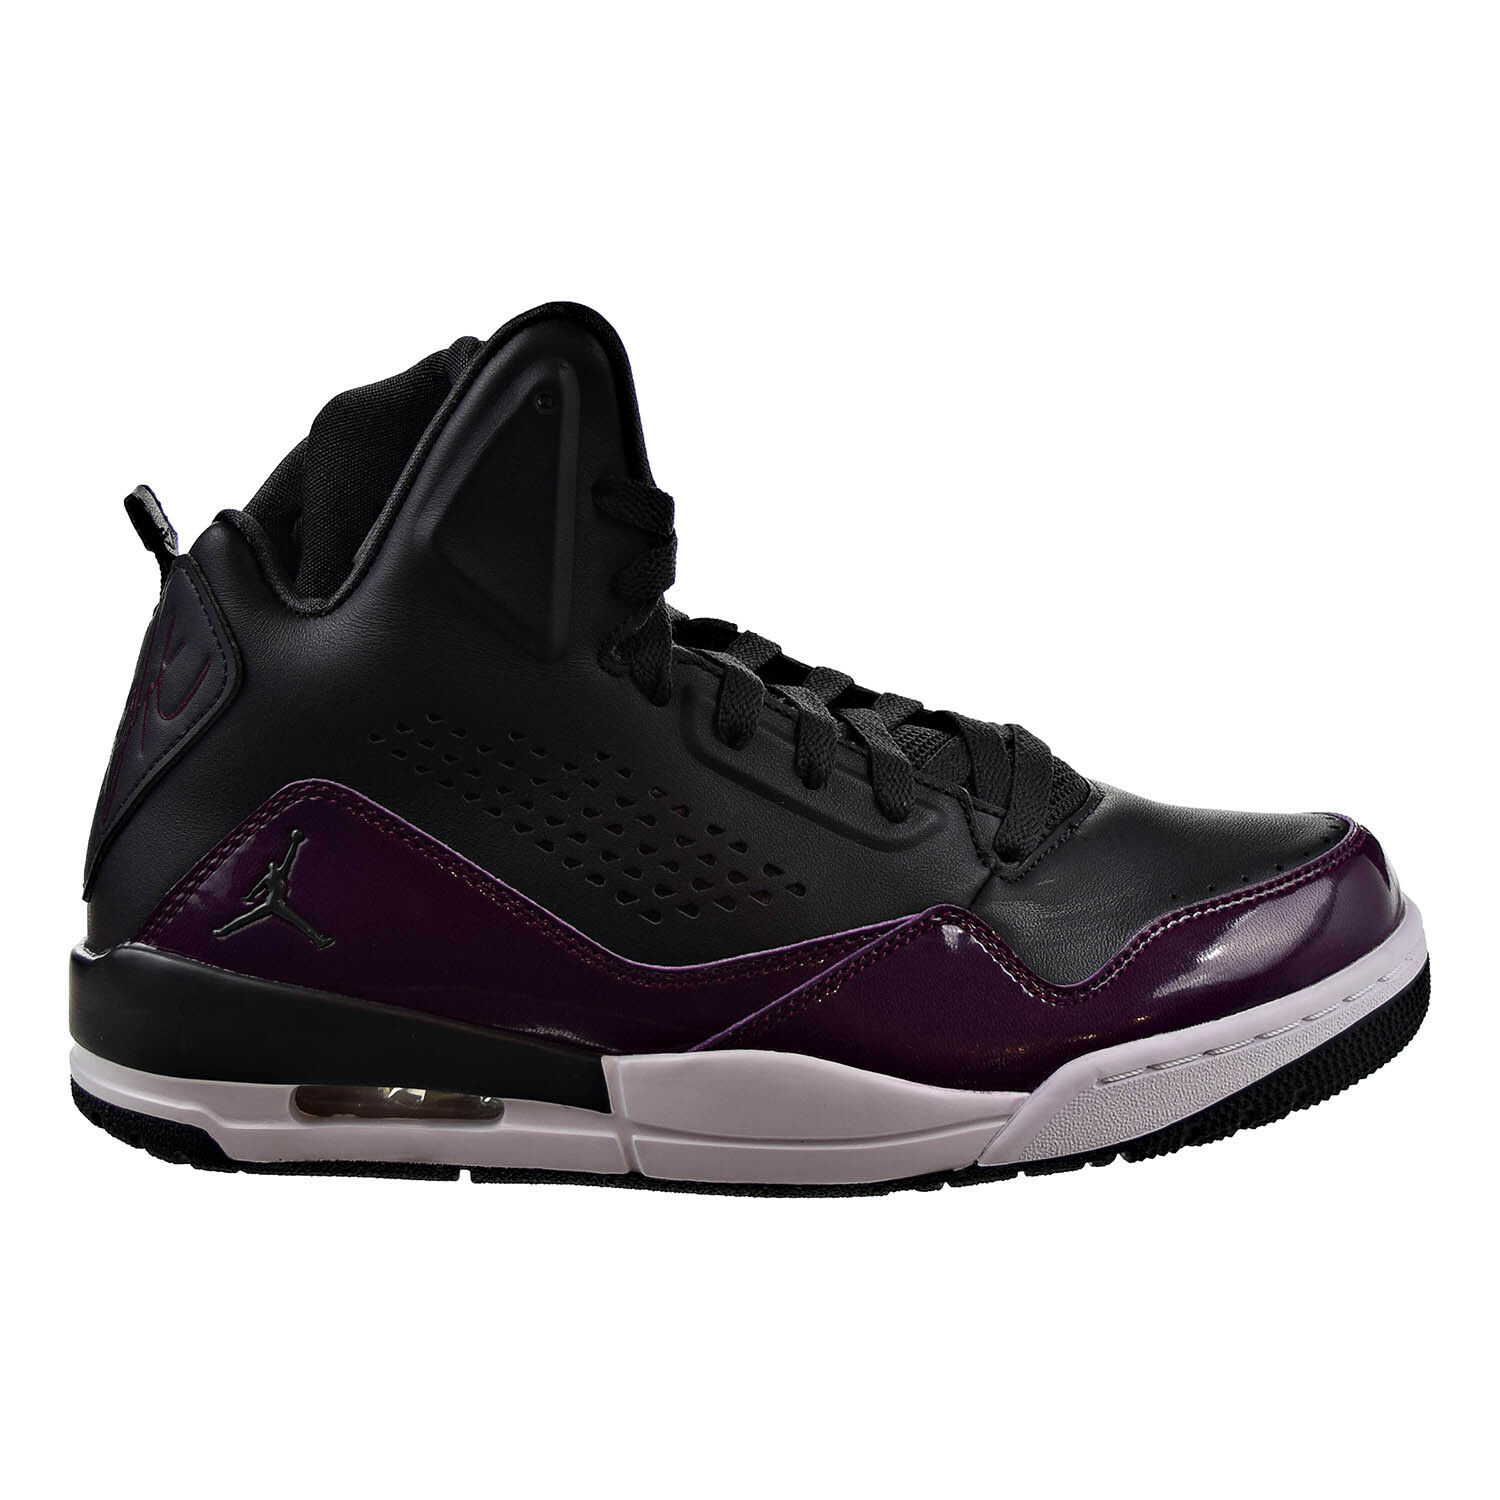 Jordan SC-3 Men's Basketball Shoes Anthracite/Anthracite-Bordeaux 629877-022 Brand discount